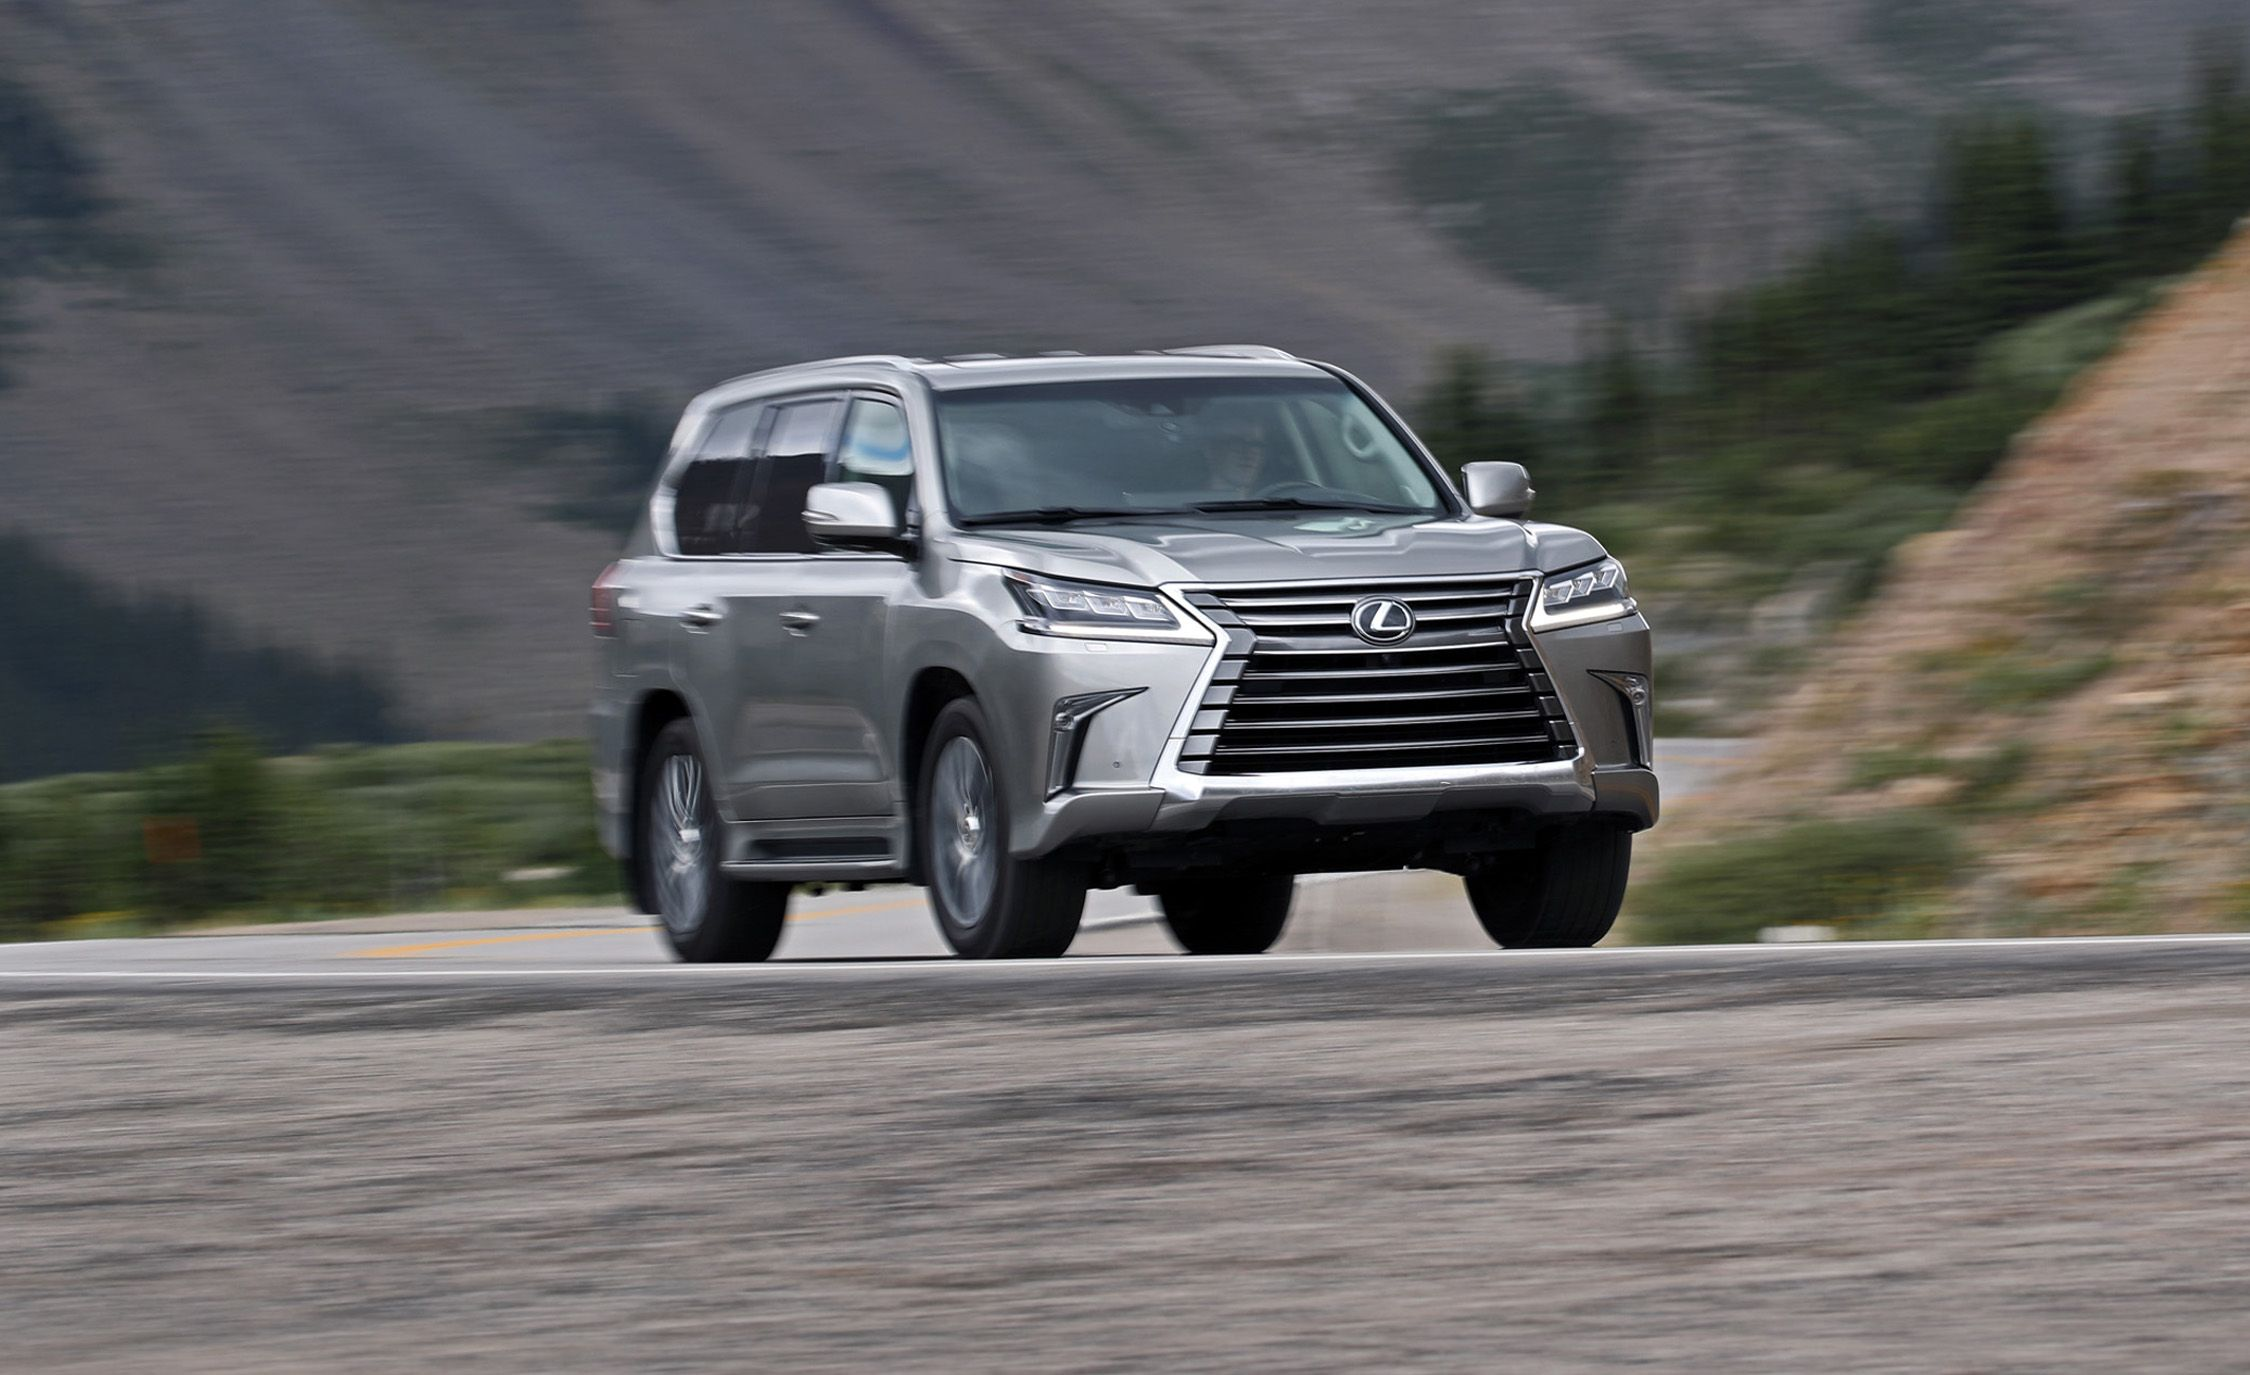 2018 Lexus Lx570 Tested A Highfalutin Hauler Review Car And Driver